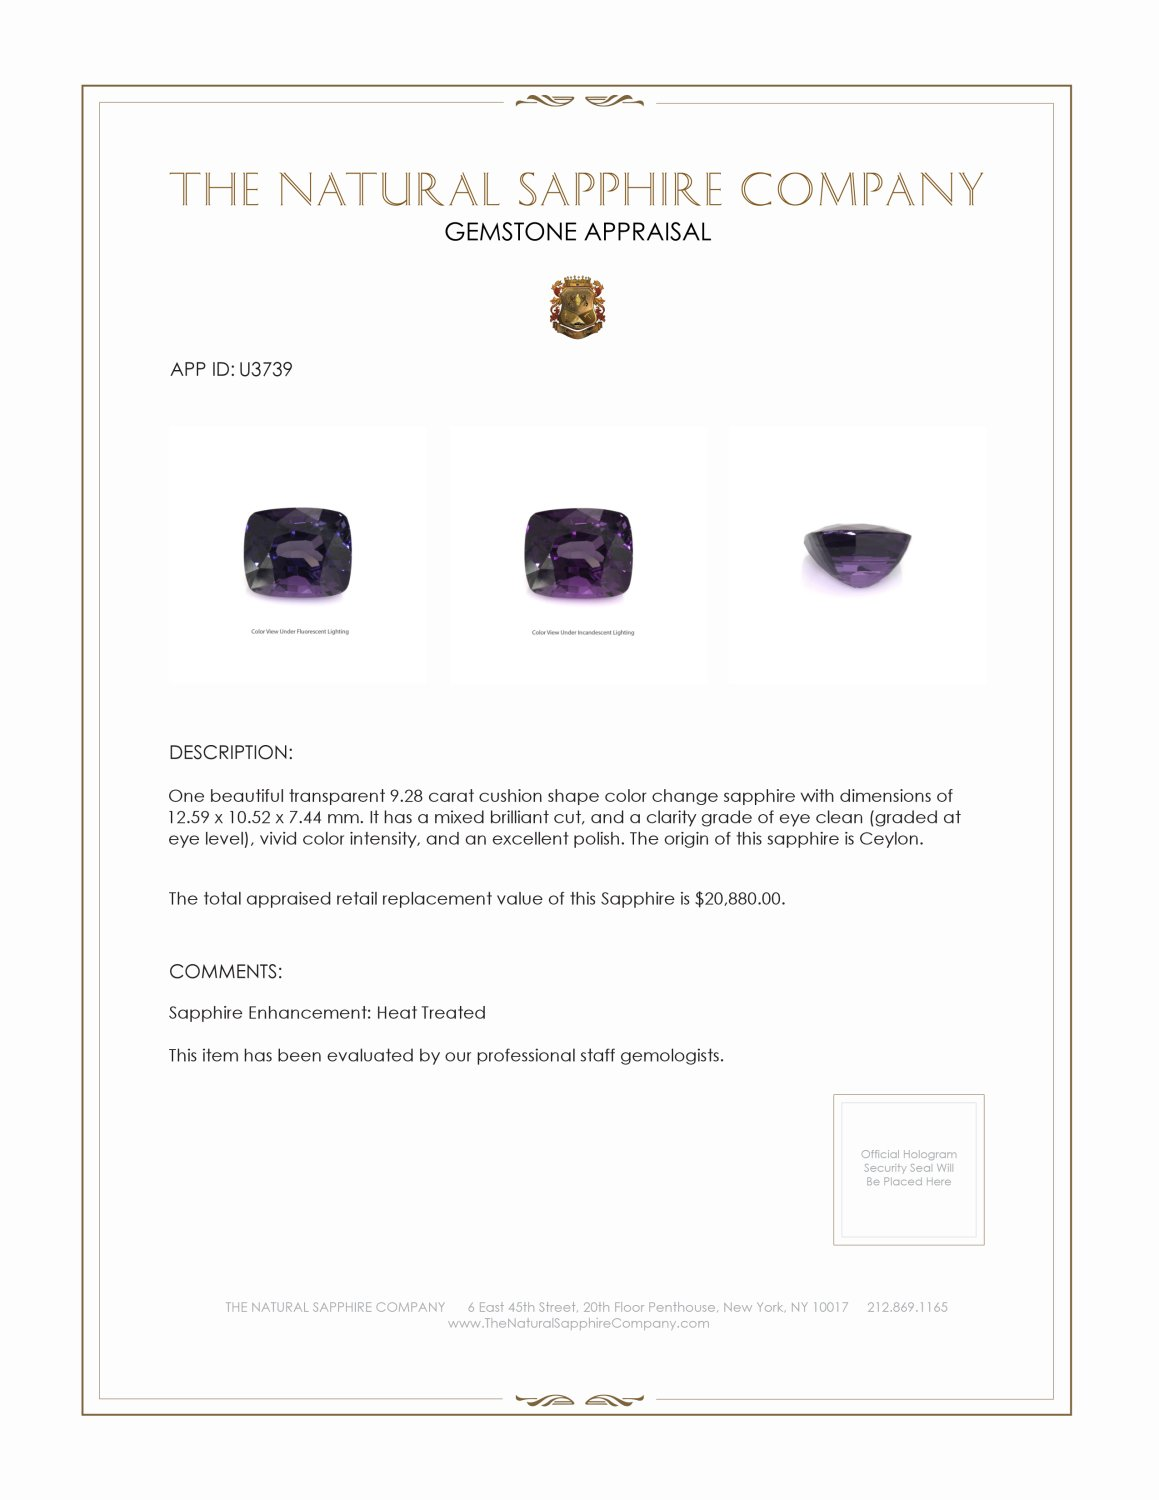 Natural Color-Change Sapphire U3739 Certification 4